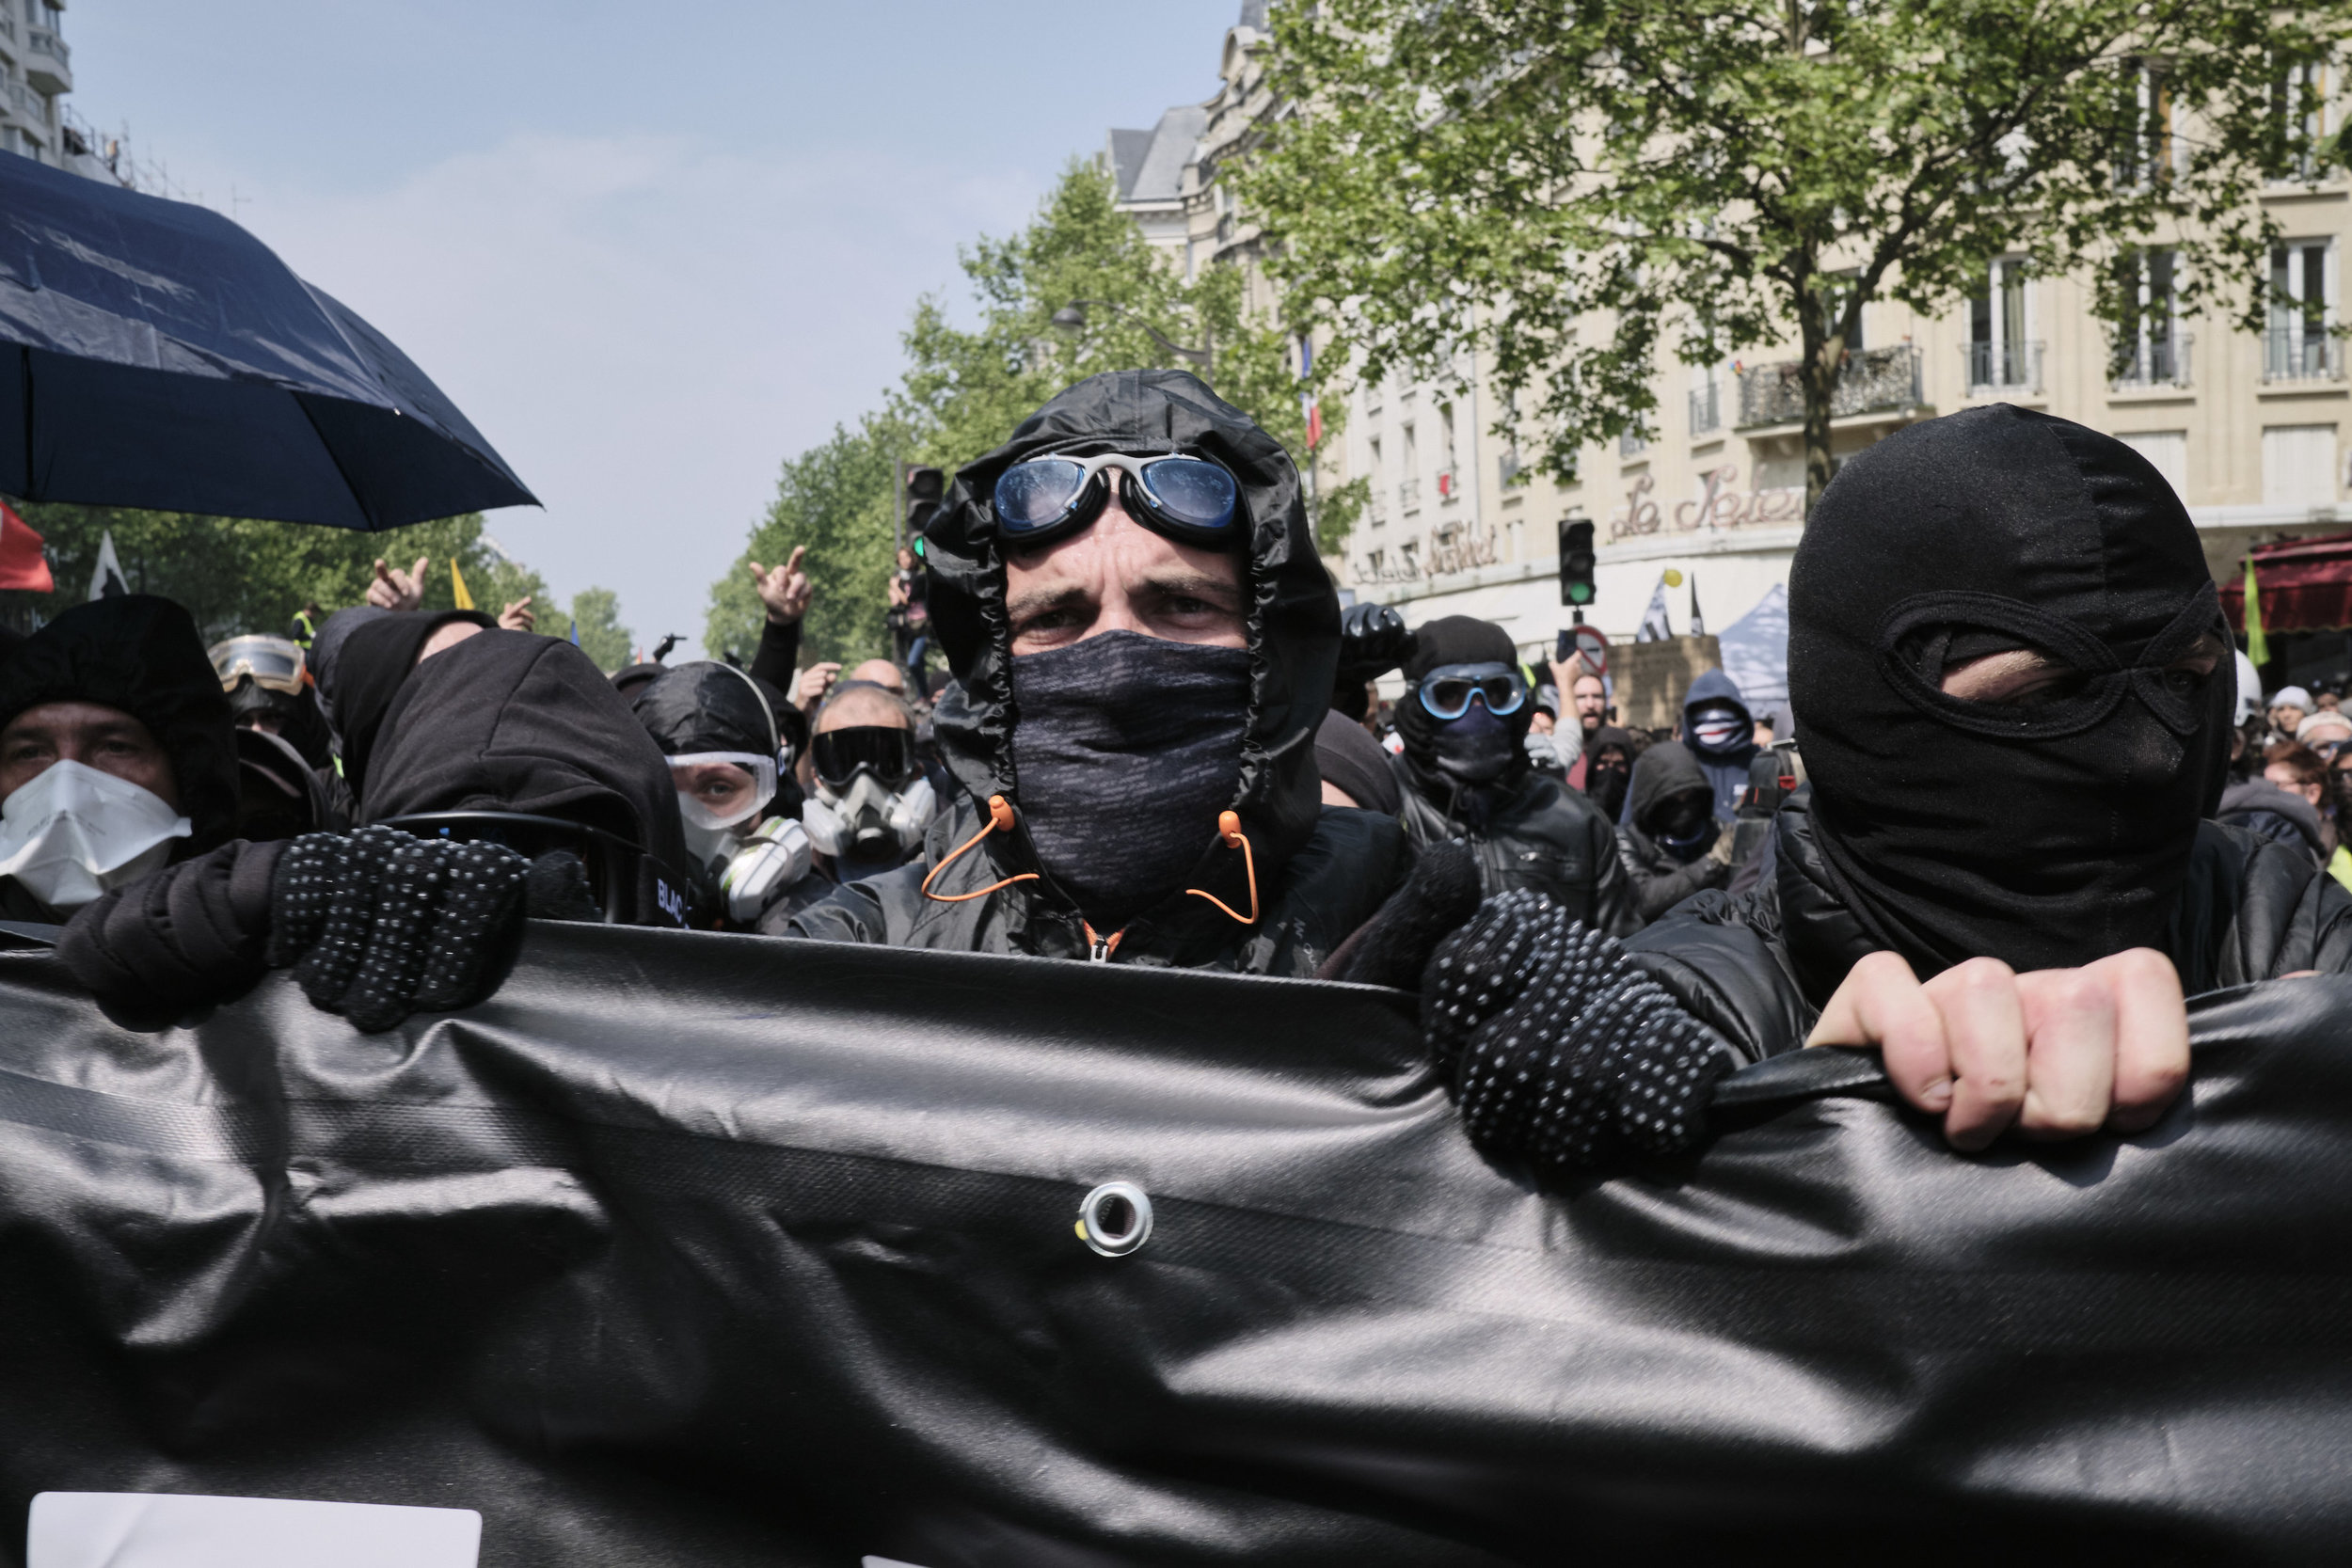 Anti-fascist participants of the protests holding a banner in front of the police.